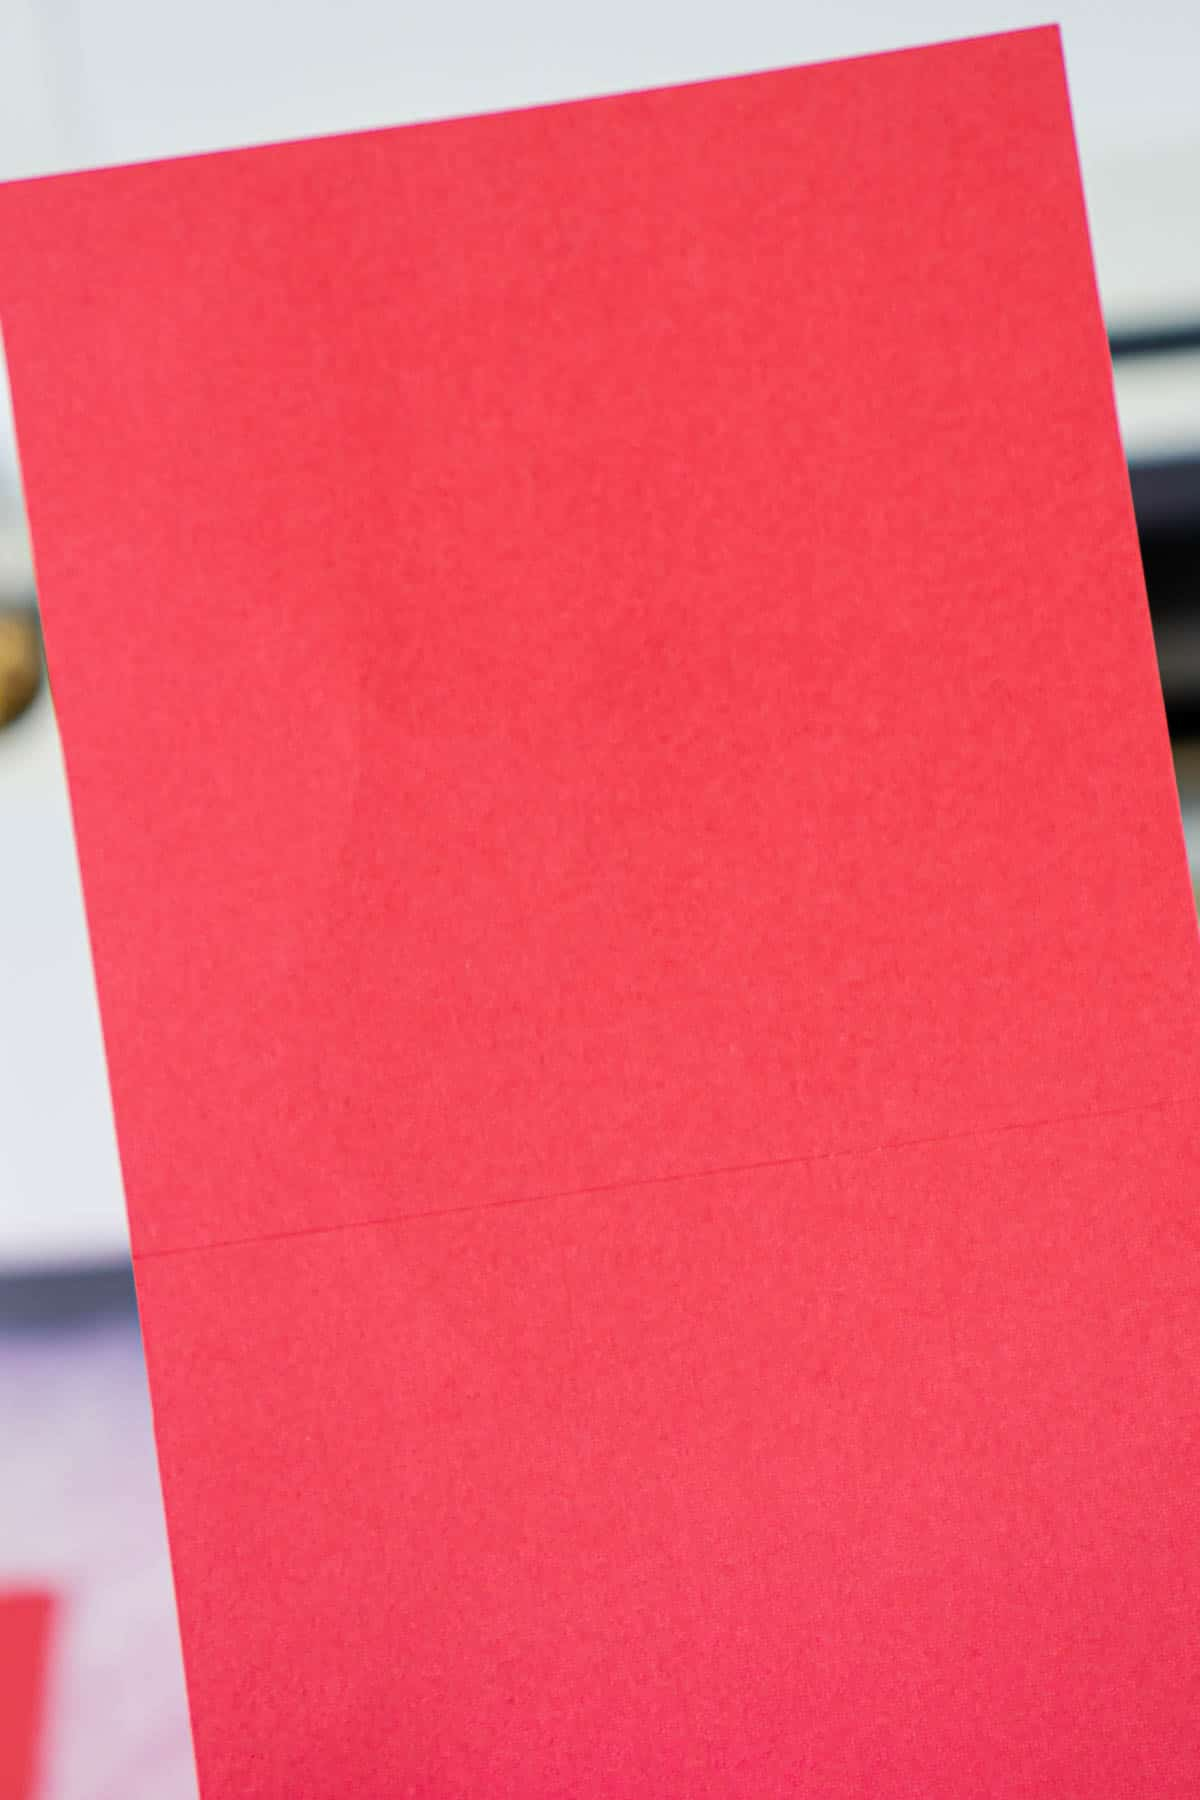 Piece of red cardstock with score lines